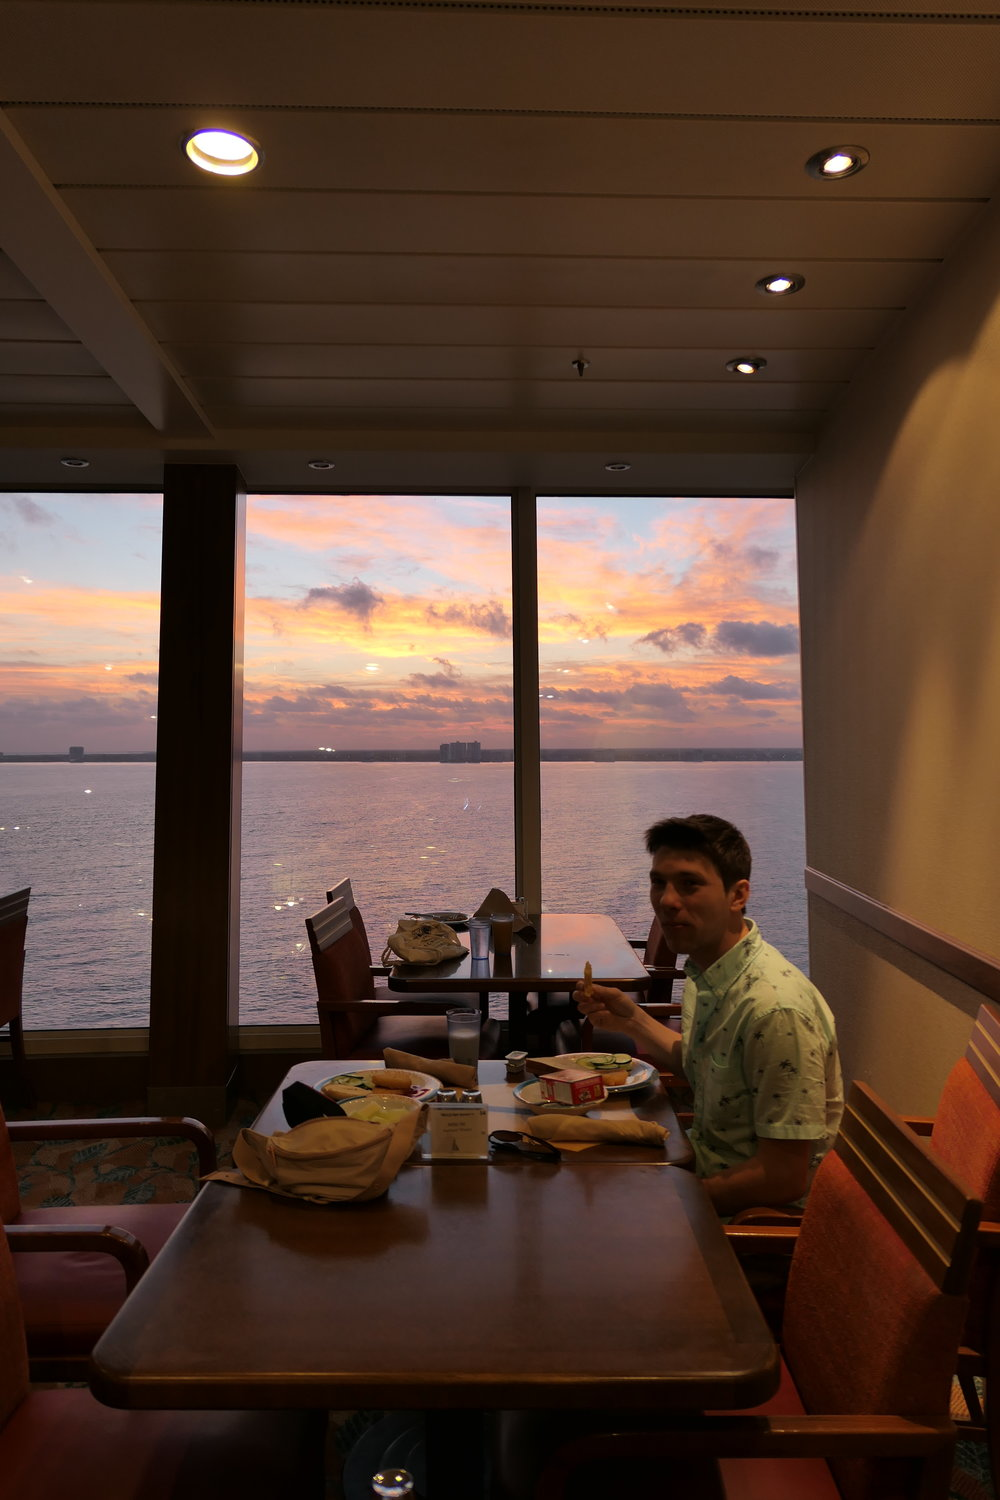 Here is one photo I don't mind sharing :). The morning we docked in Cozumel there was the most beautiful sunrise during breakfast. We had a great view!